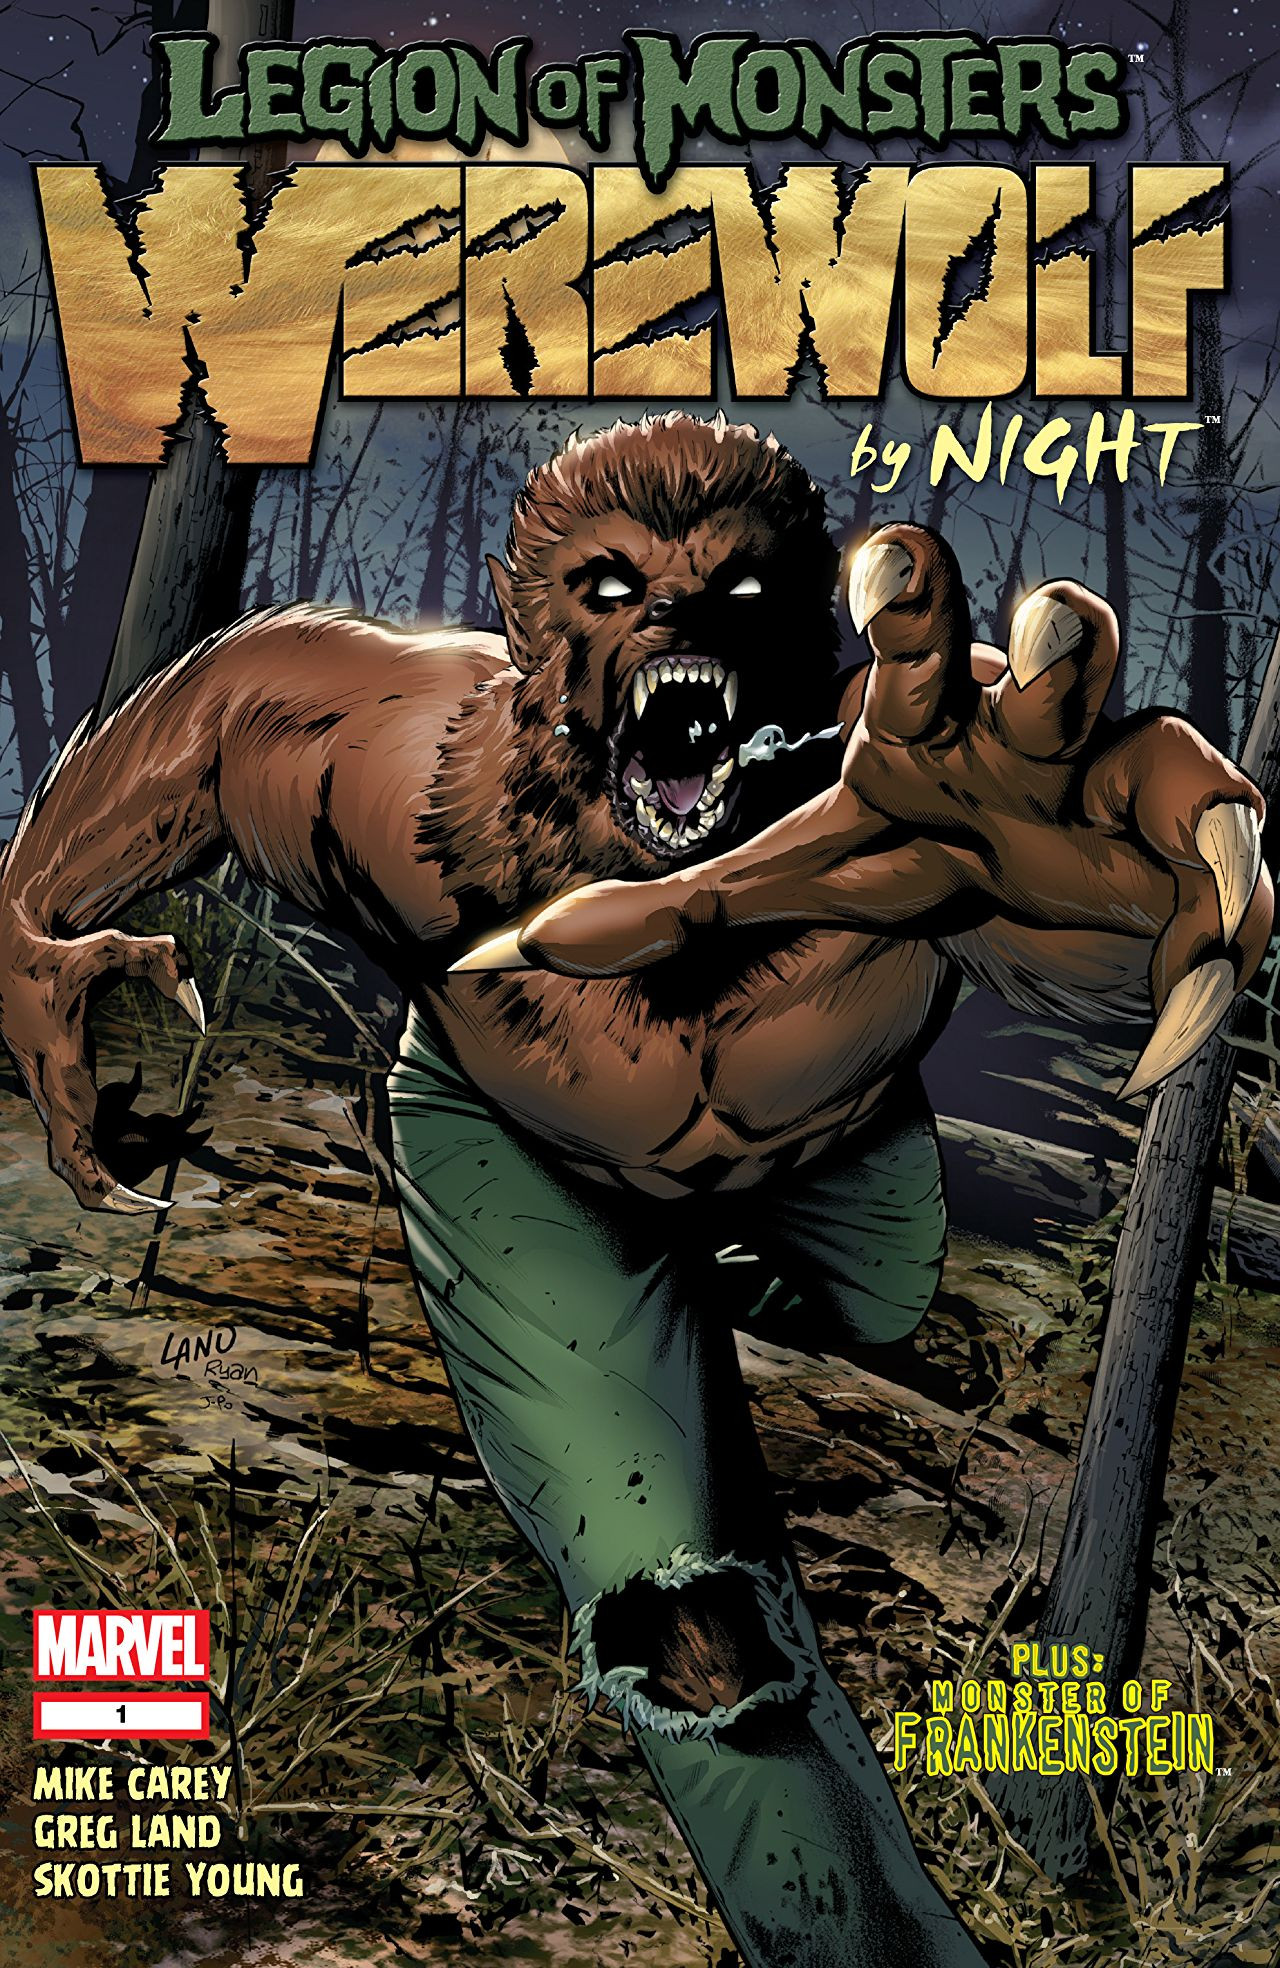 Legion of Monsters: Werewolf by Night Vol 1 1